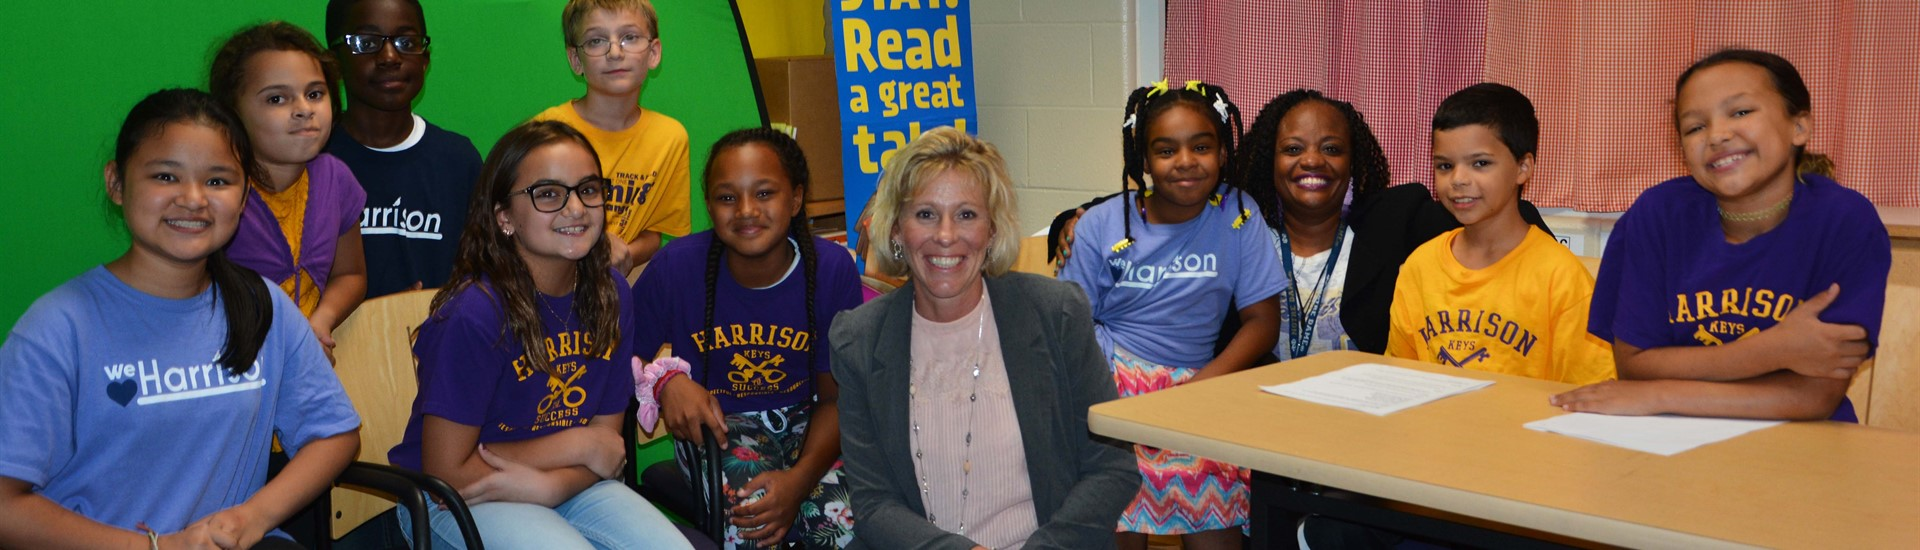 Ohio Board of Education President Tess Elshoff's visit